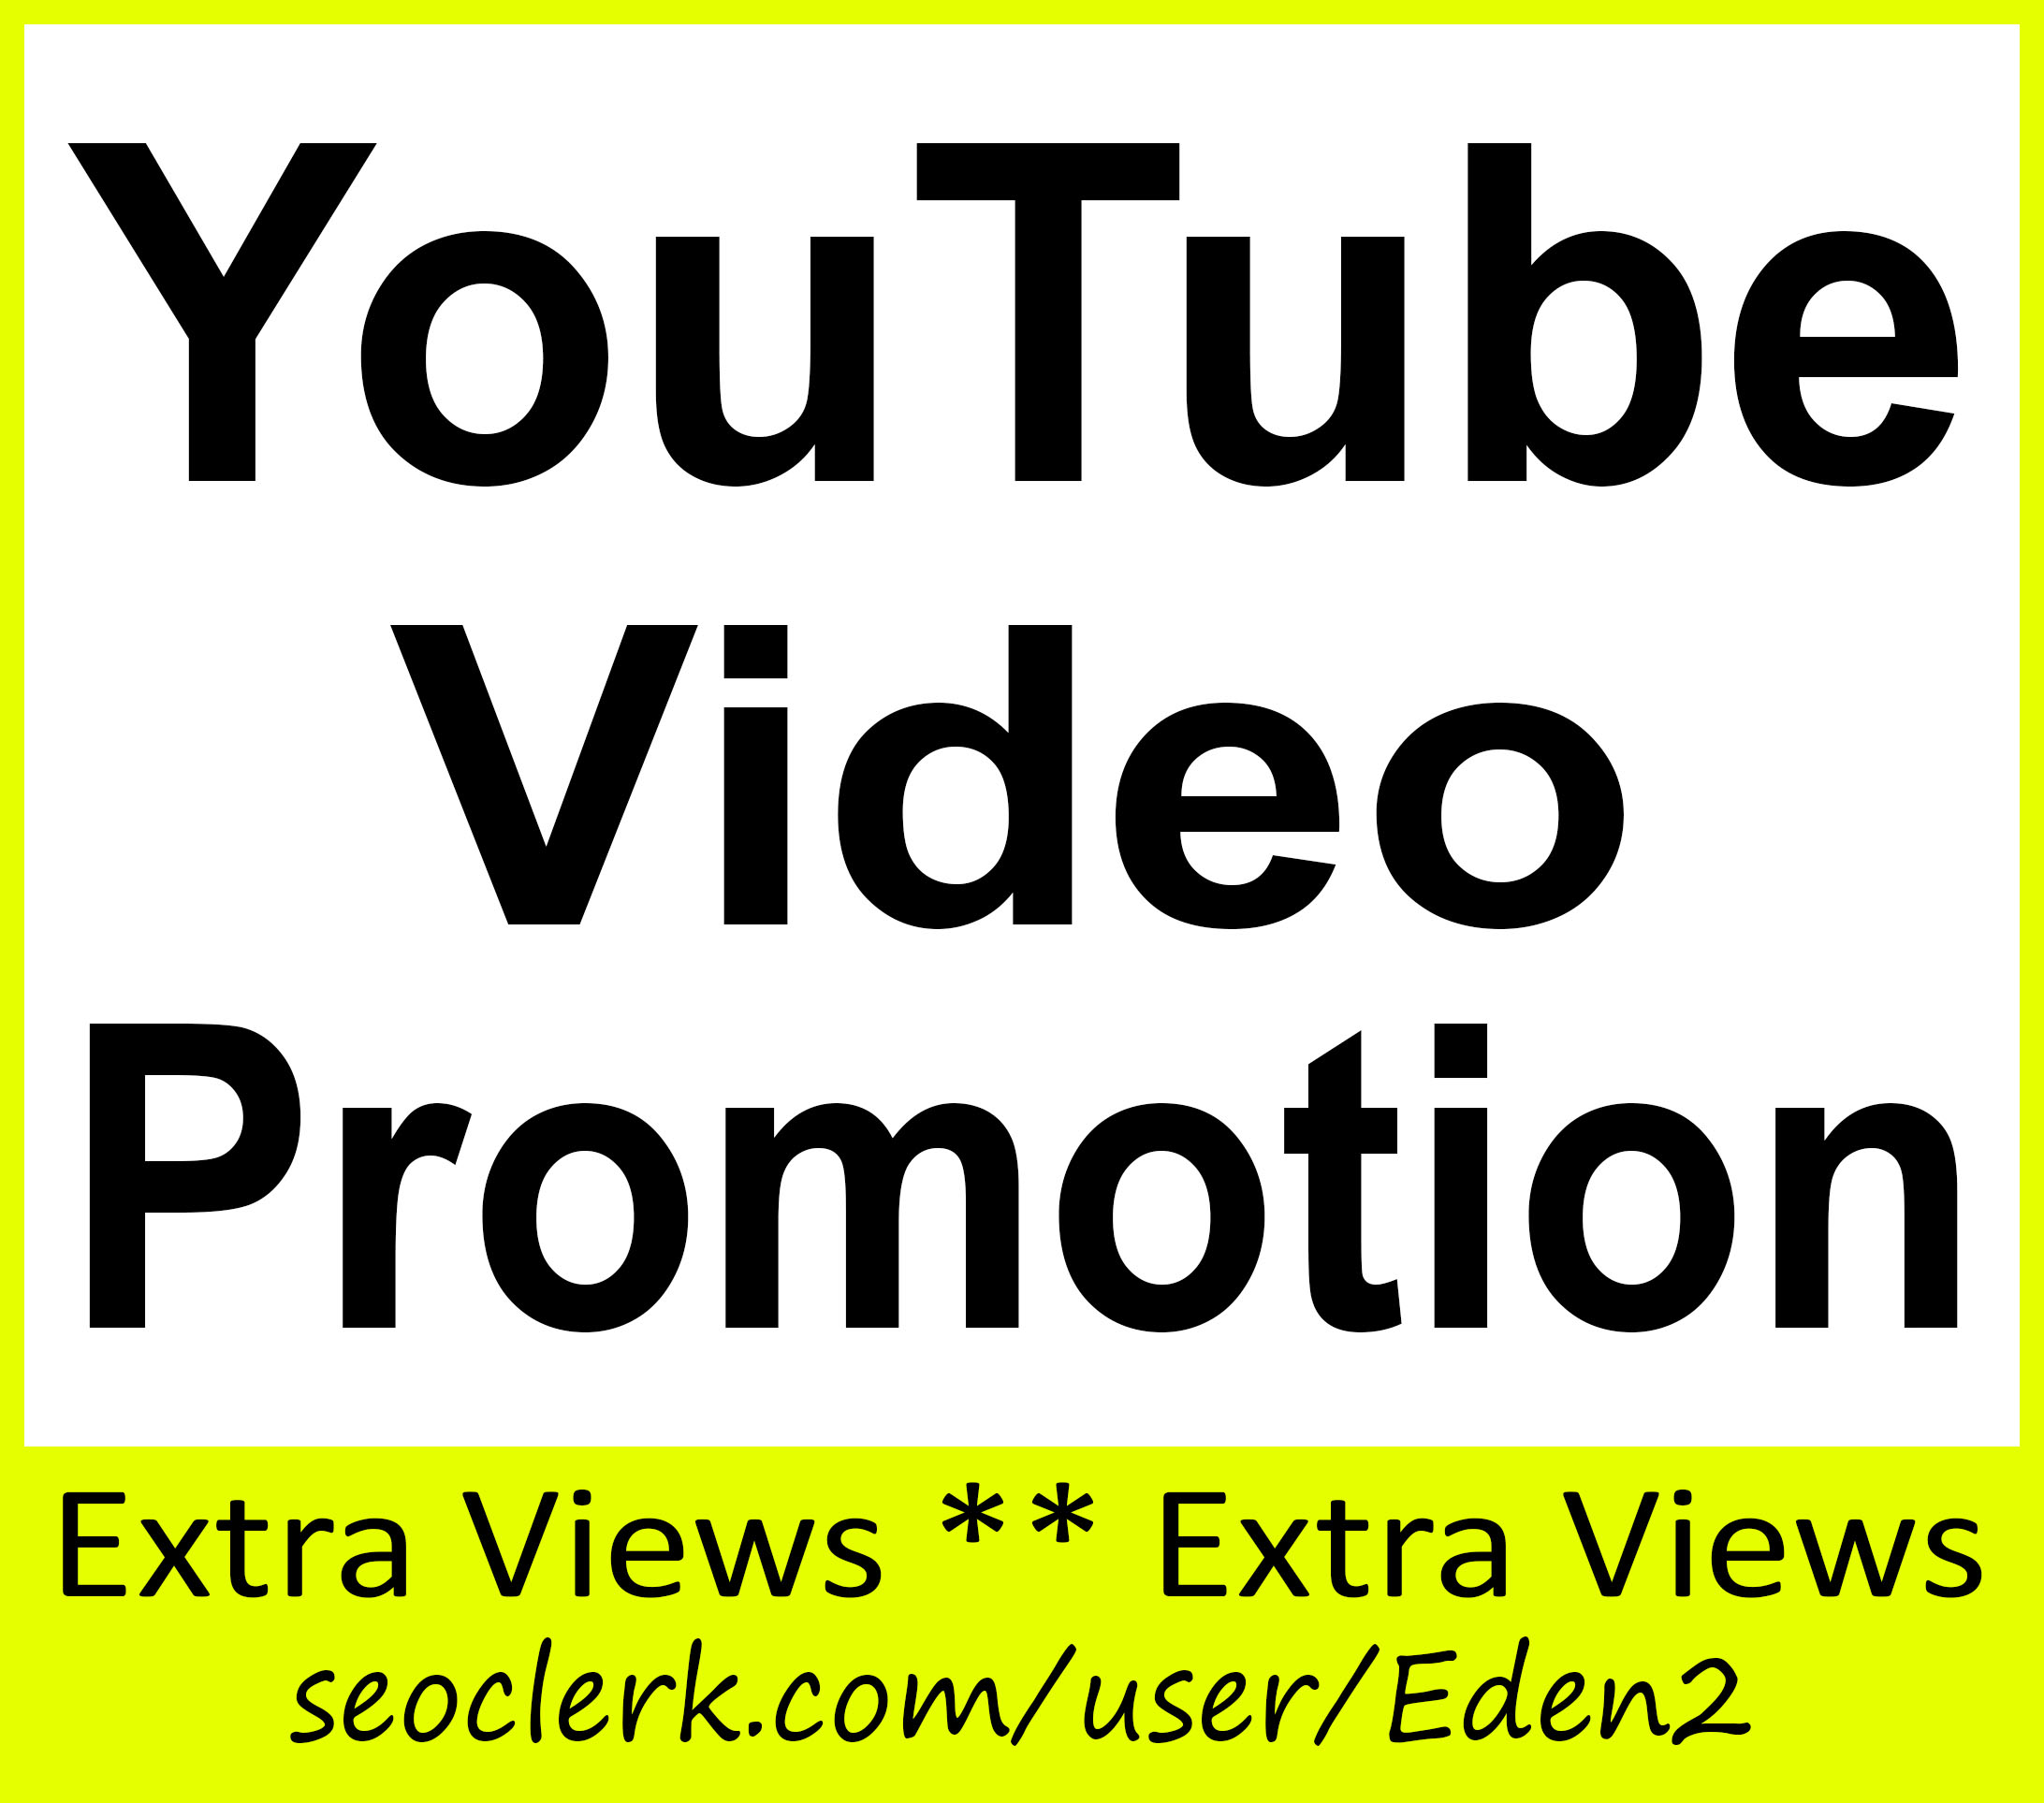 YouTube Video Promotion High Quality & Good For Ranking